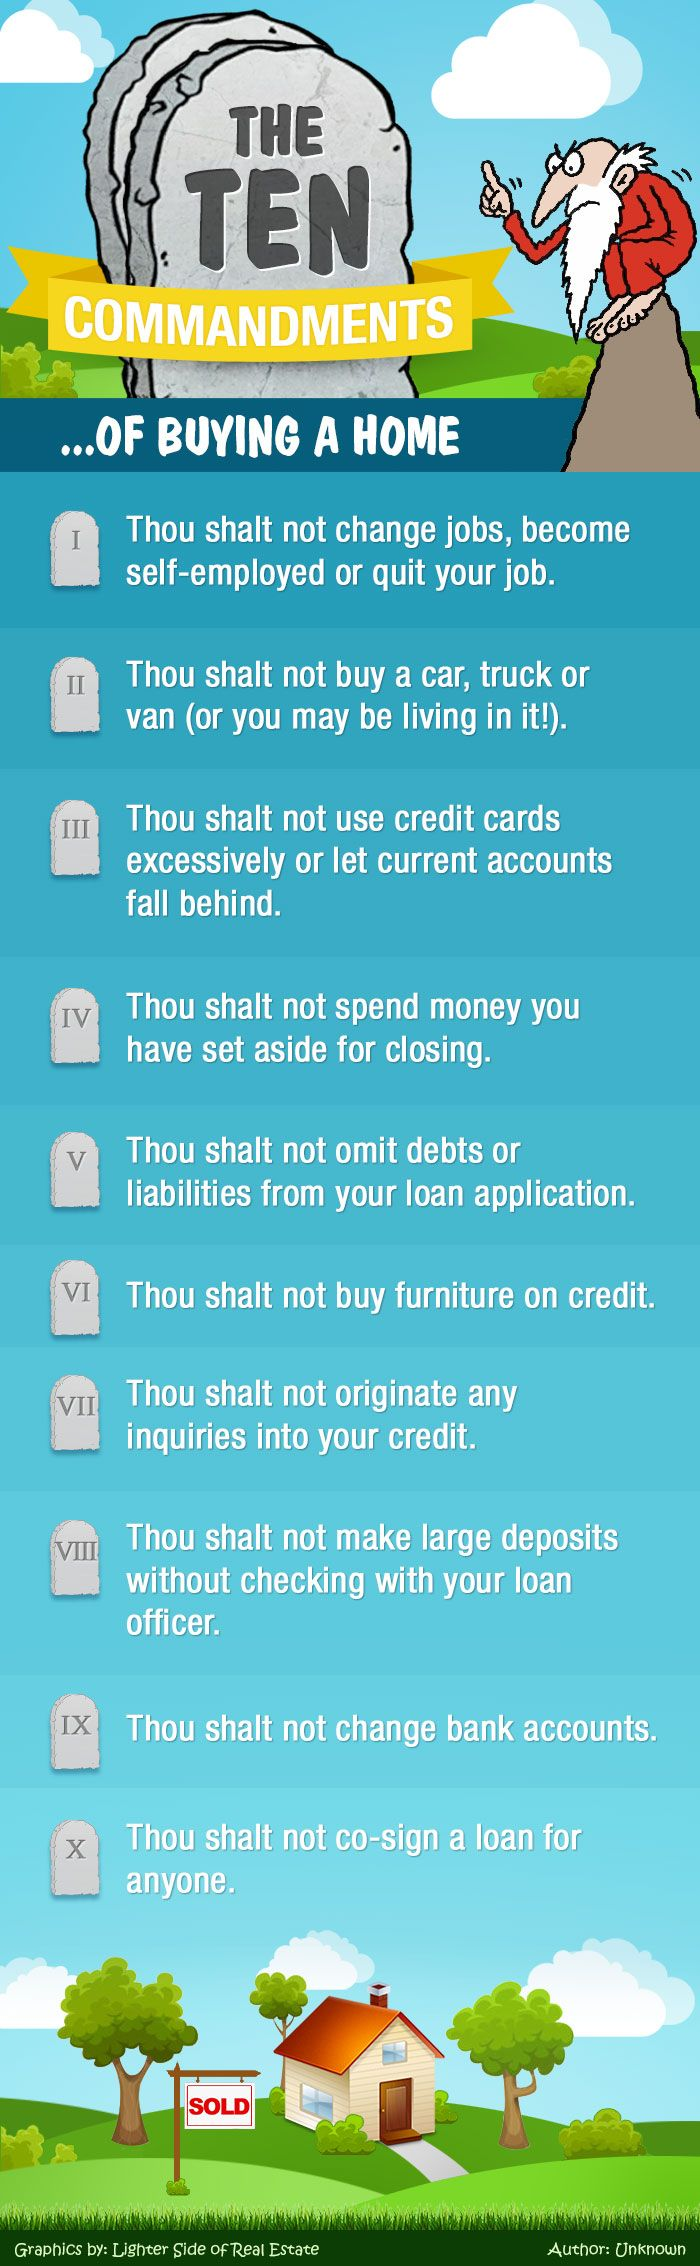 Achieve The Dream Of #HomeOwnership By Following The 10 Commandments Of Buying A #Home. -The Lighter Side Of Real Estate #HomeBuyingTips